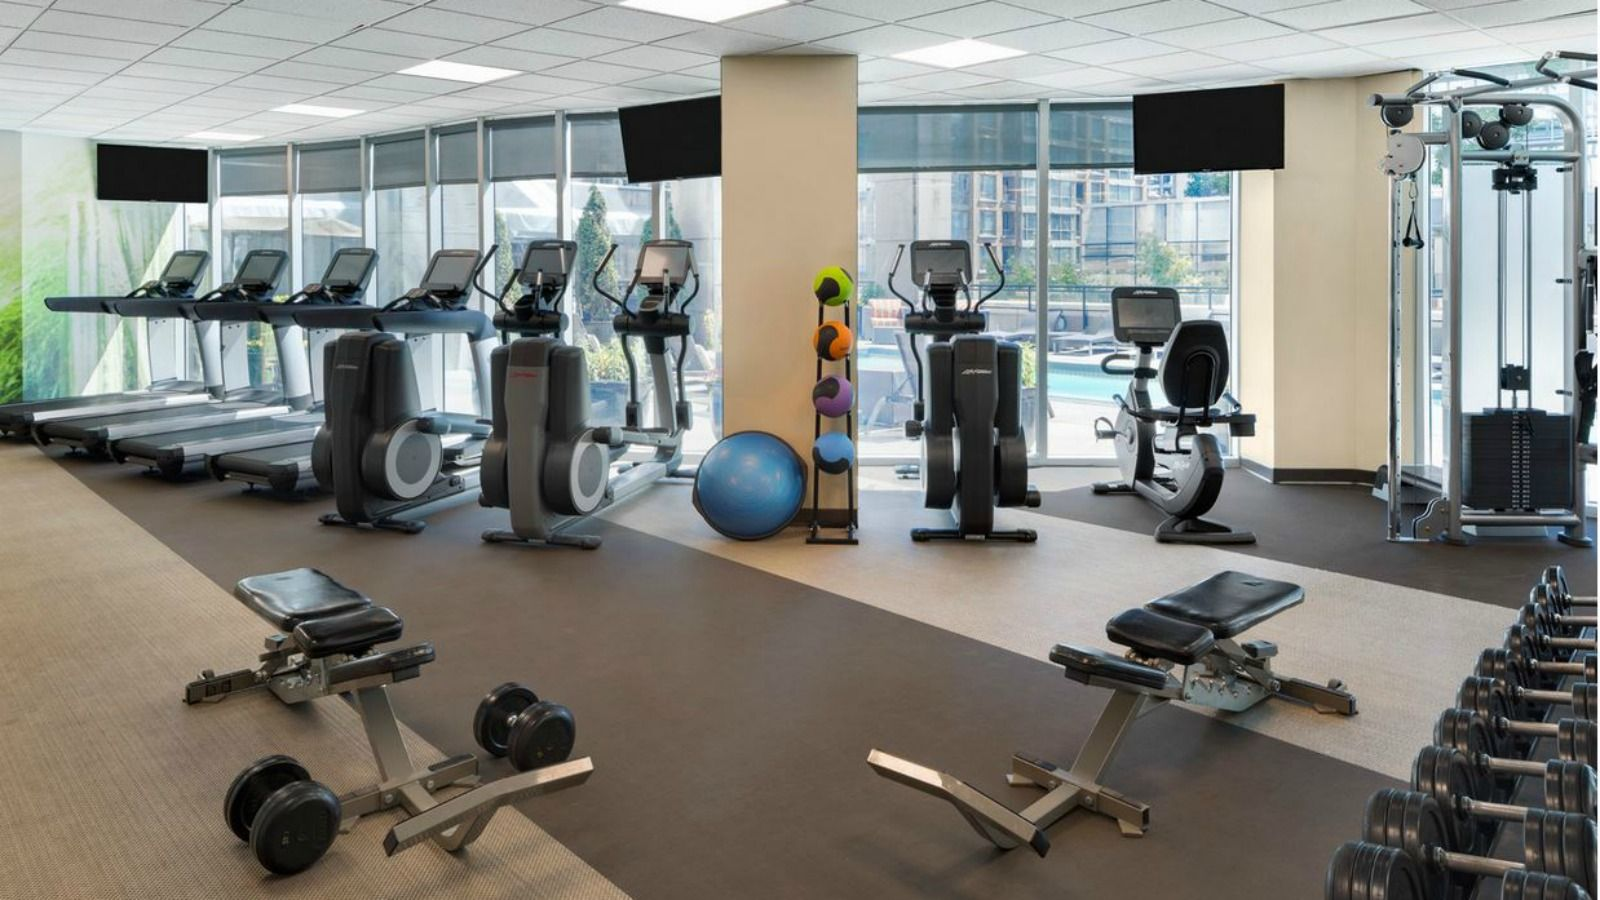 Vancouver Hotel Features - Fitness Center